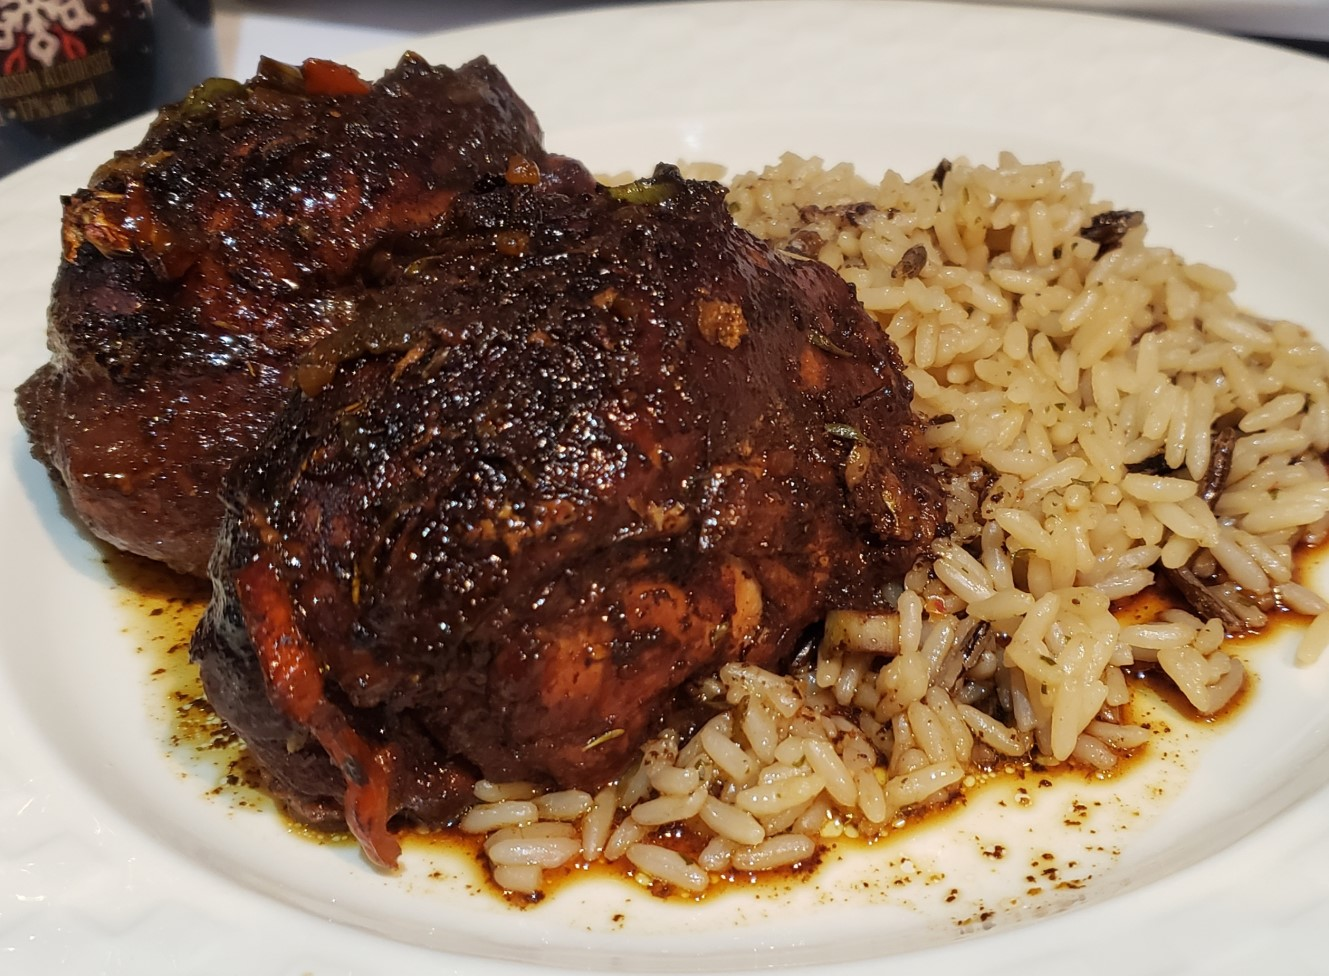 A delicious plate of jerk chicken